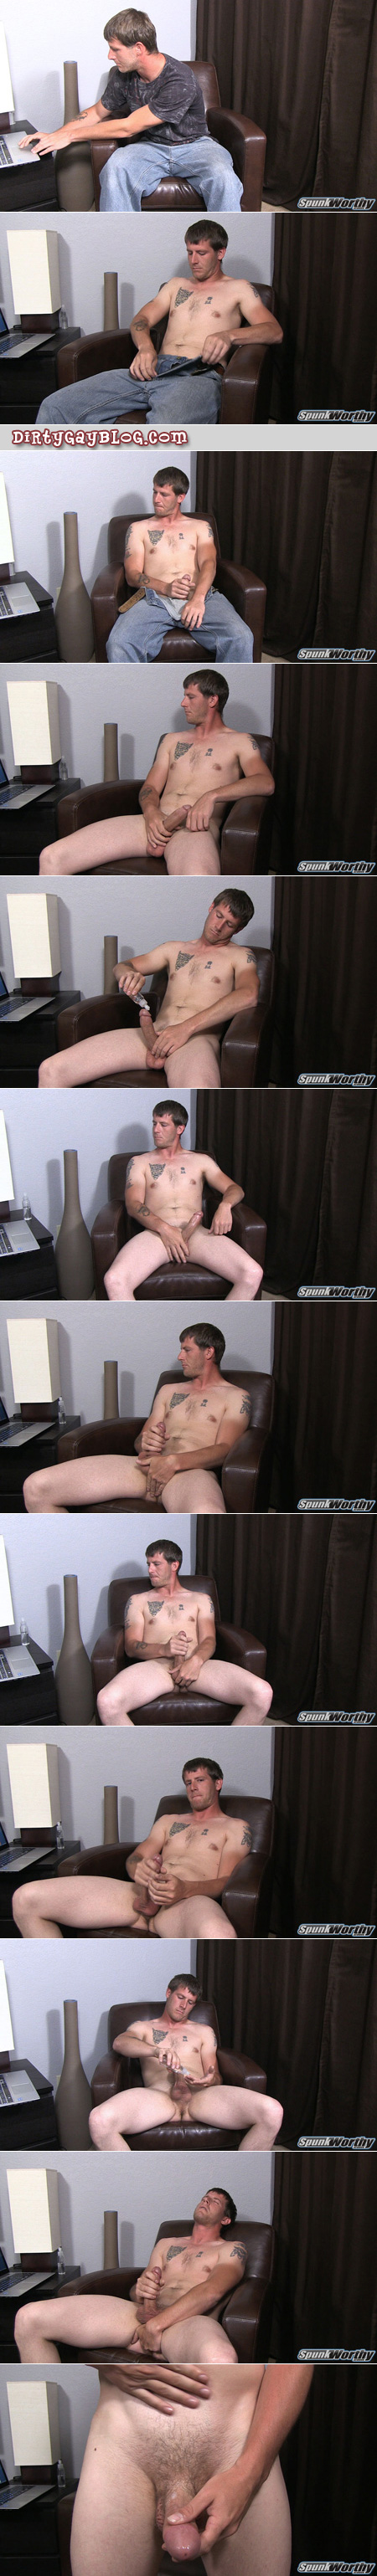 Hung straight guy masturbating to Internet porn and fingering his asshole.